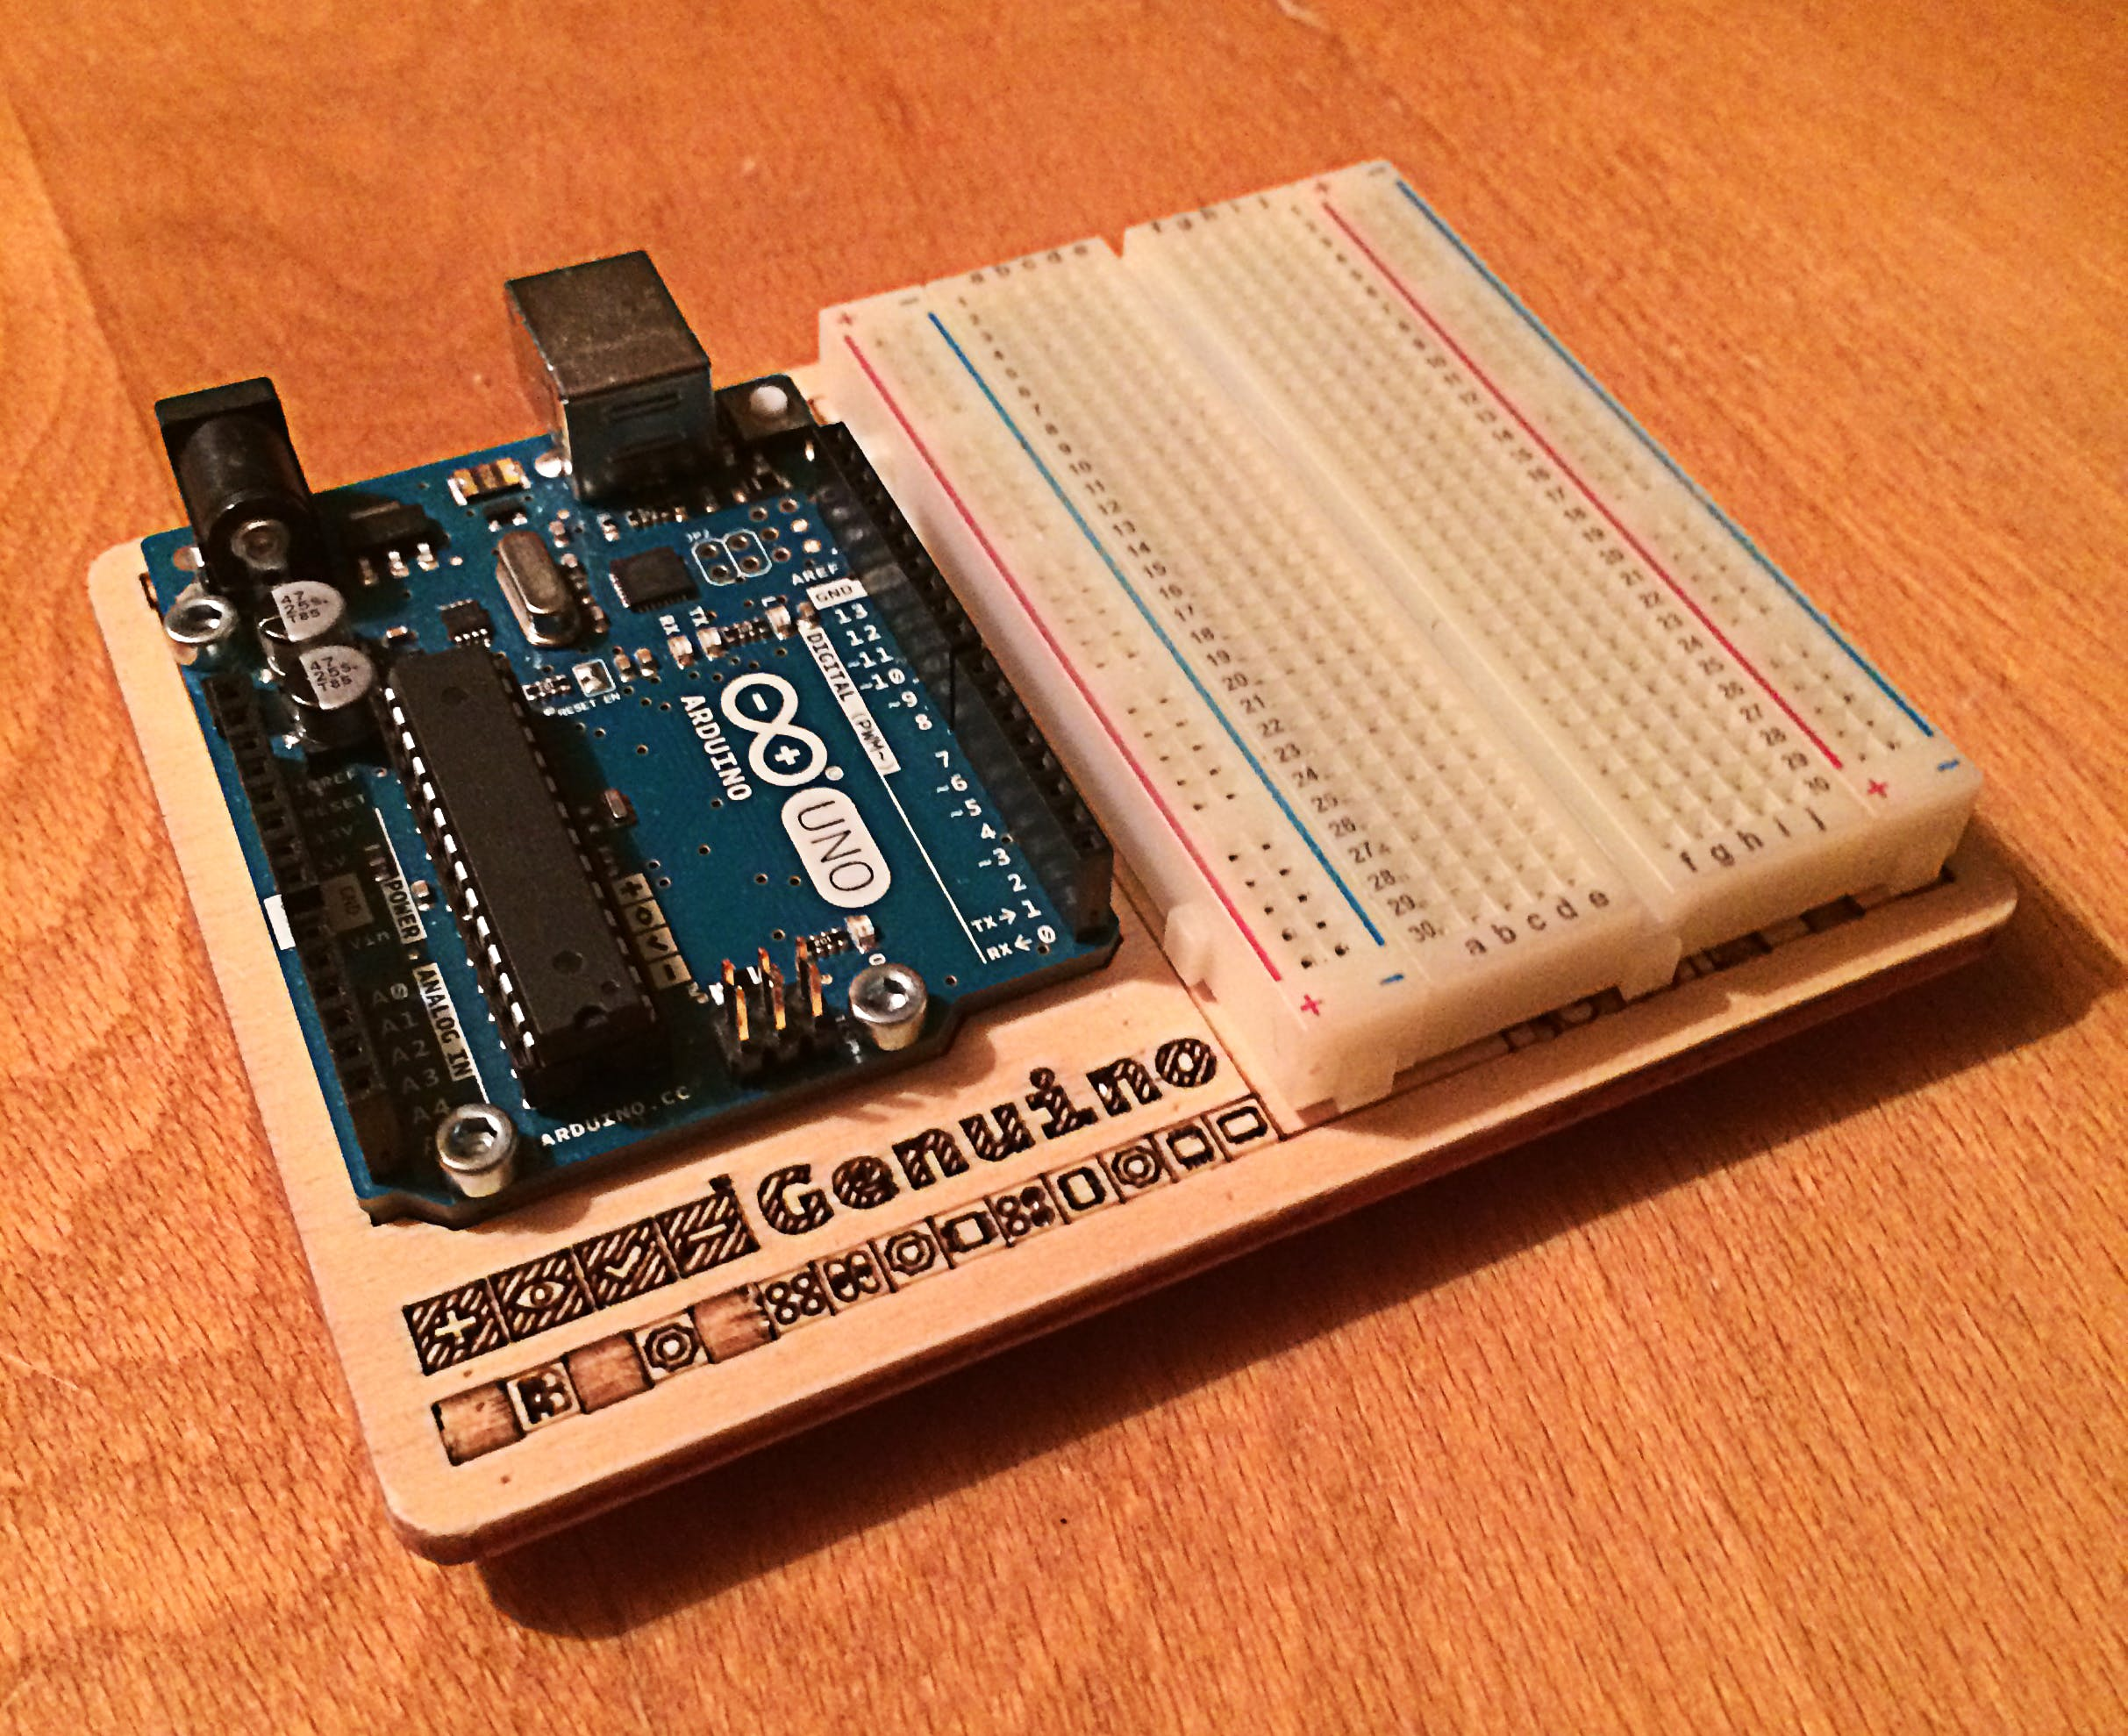 An Arduino Uno and a medium sized Breadboard, an essential for a beginner in hardware!